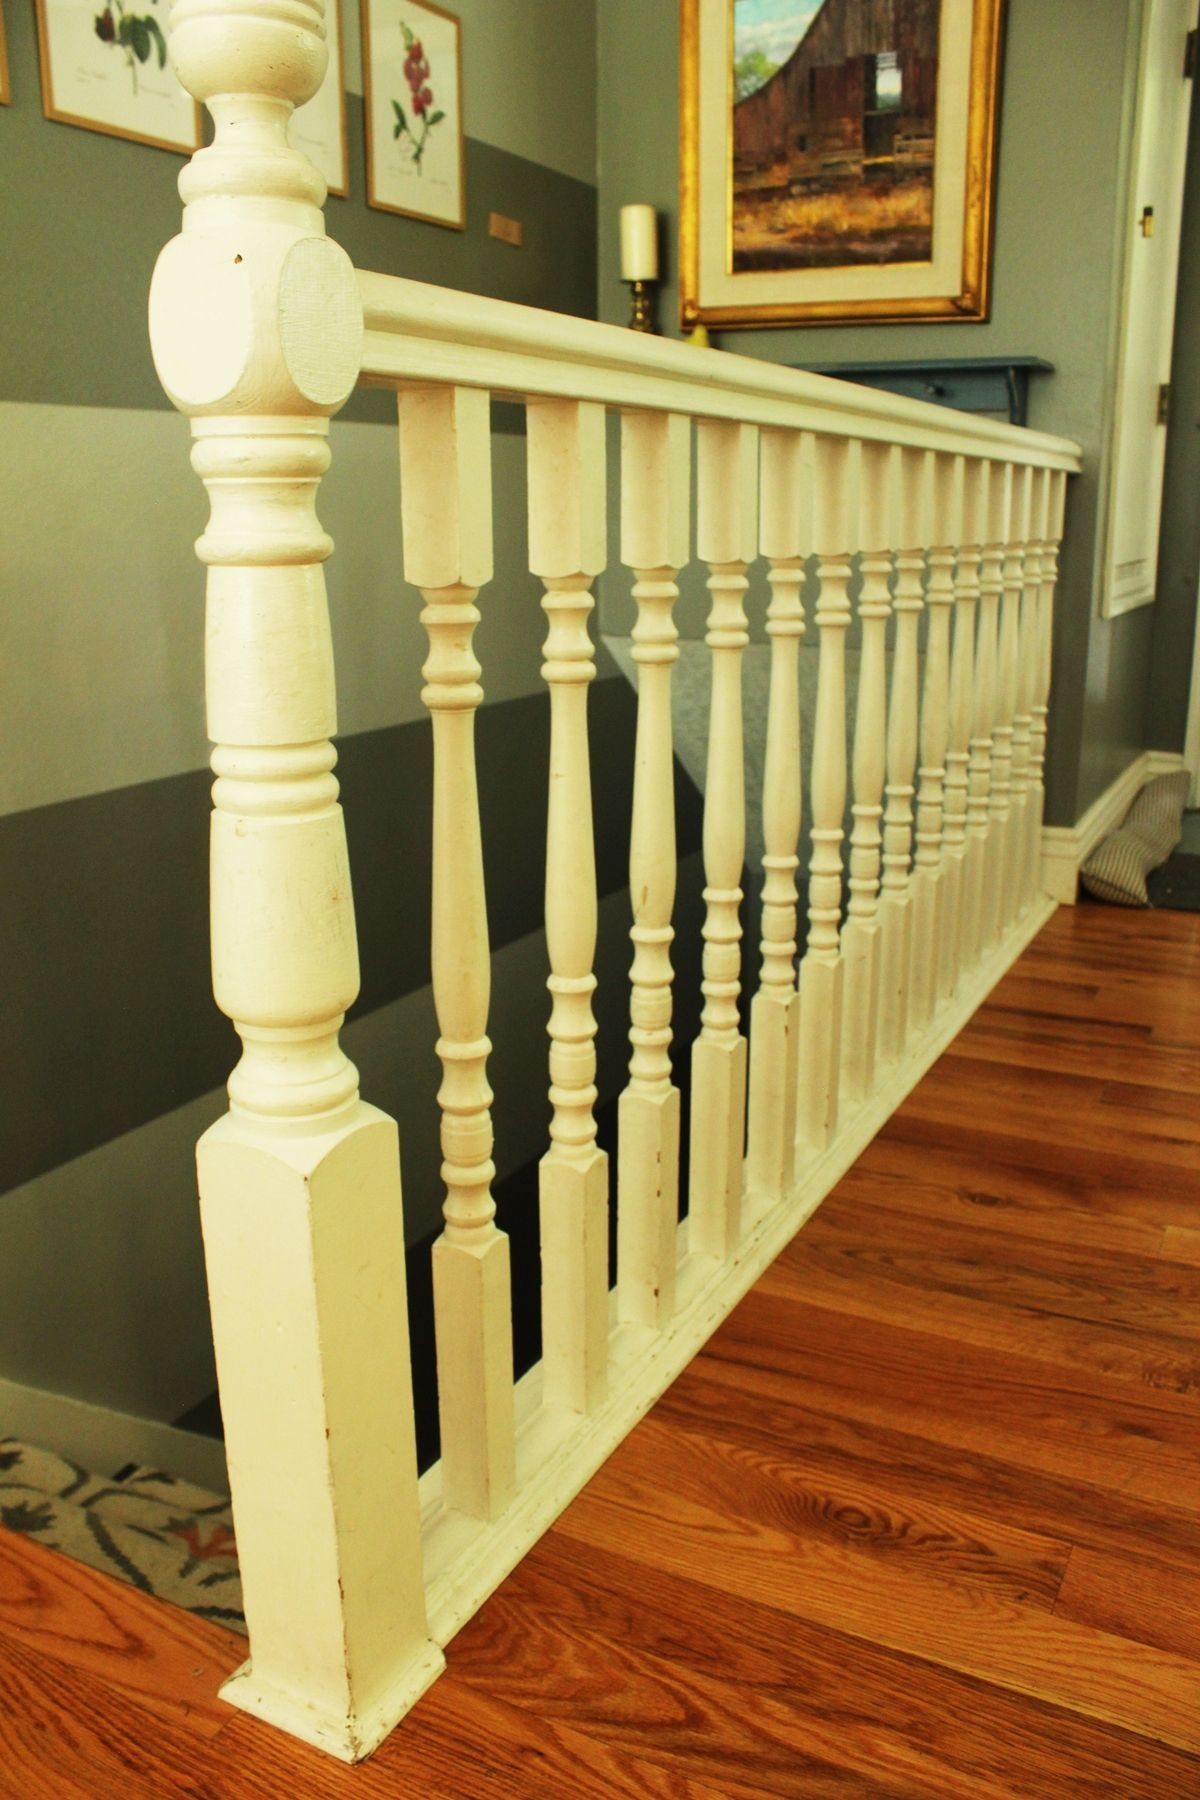 Diy Stair Handrail With Industrial Pipes And Wood | Replacing Stair Railing And Spindles | Paint | Newel Post | Iron Spindles | Wood Balusters | Stair Treads